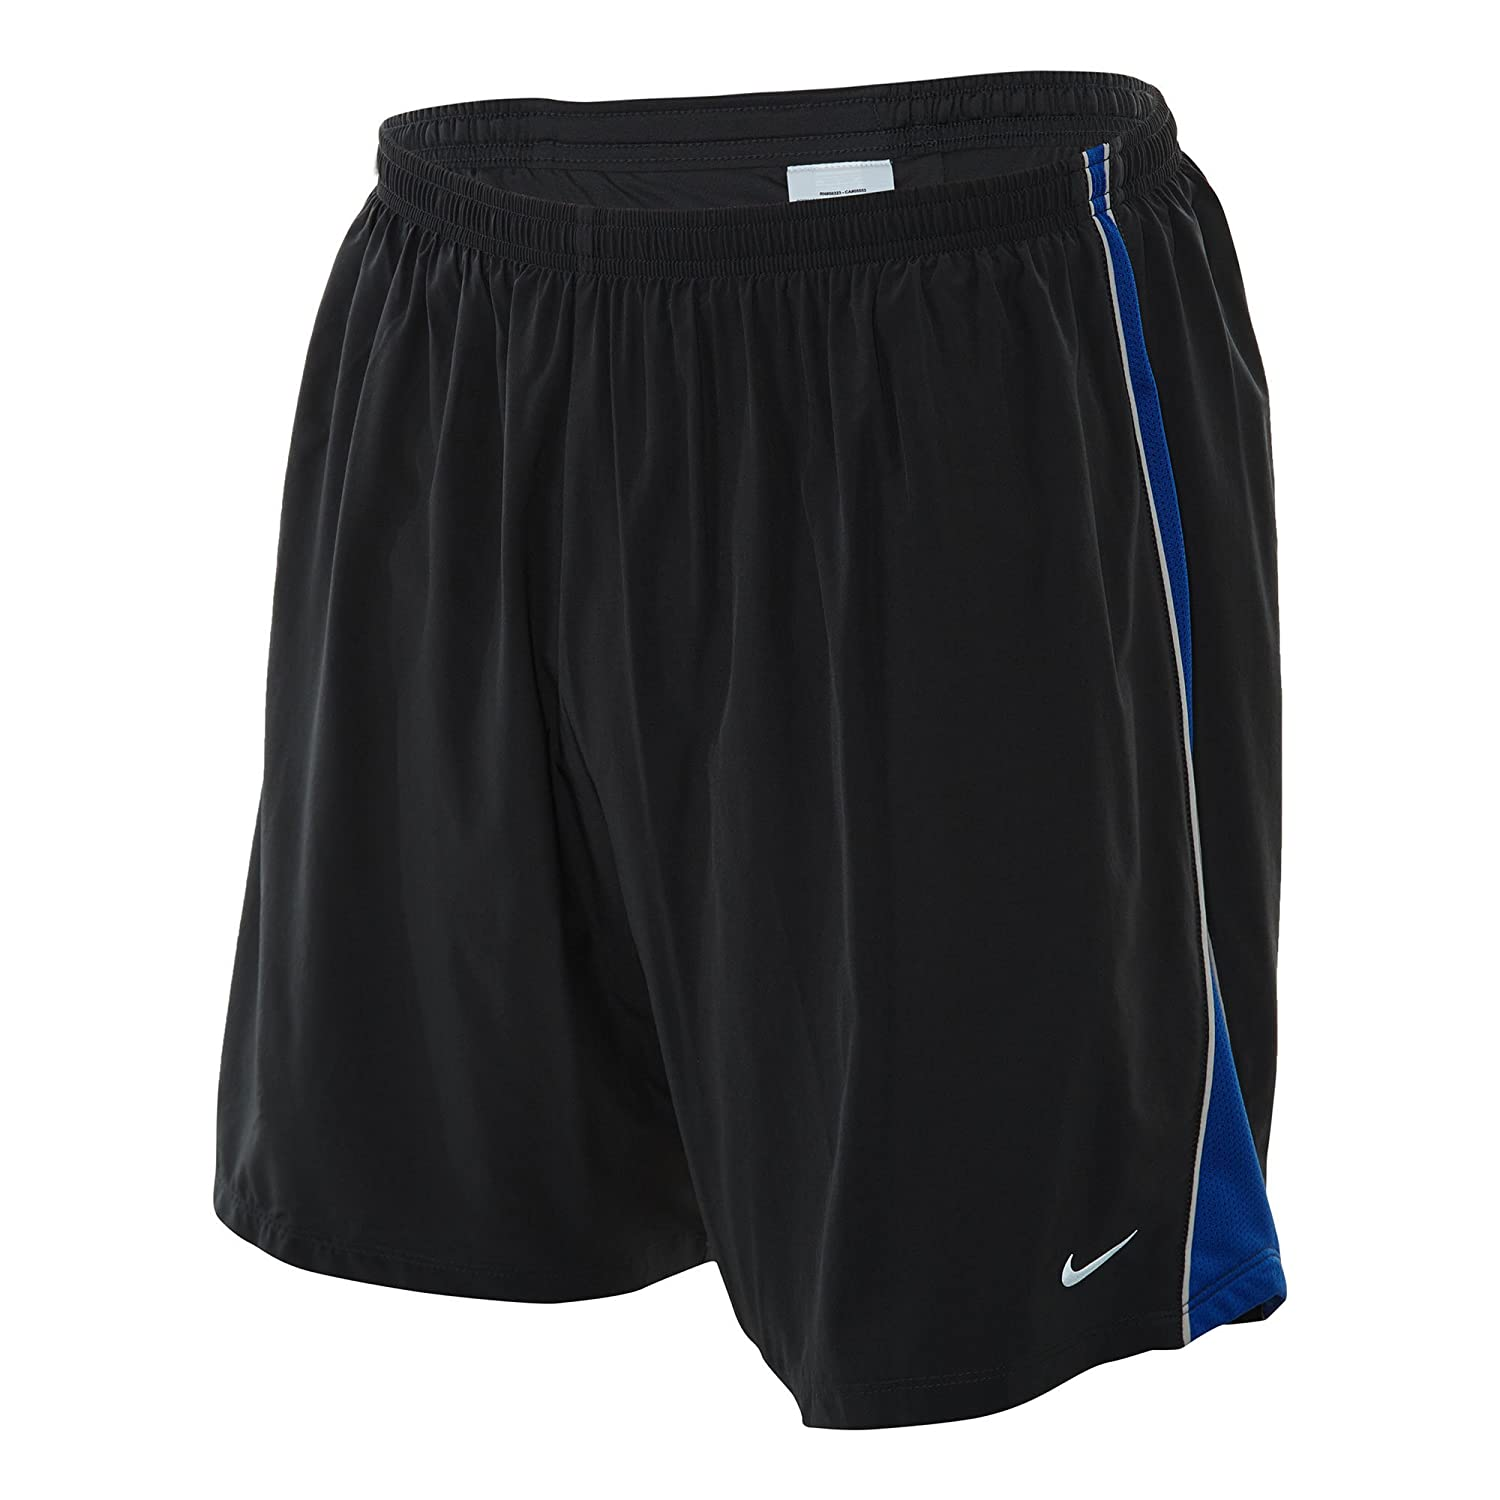 a316d9626d7 Amazon.com  NIKE SEVEN-INCH TEMPO TWO-IN-ONE SHORT (MENS) - XXL  Clothing